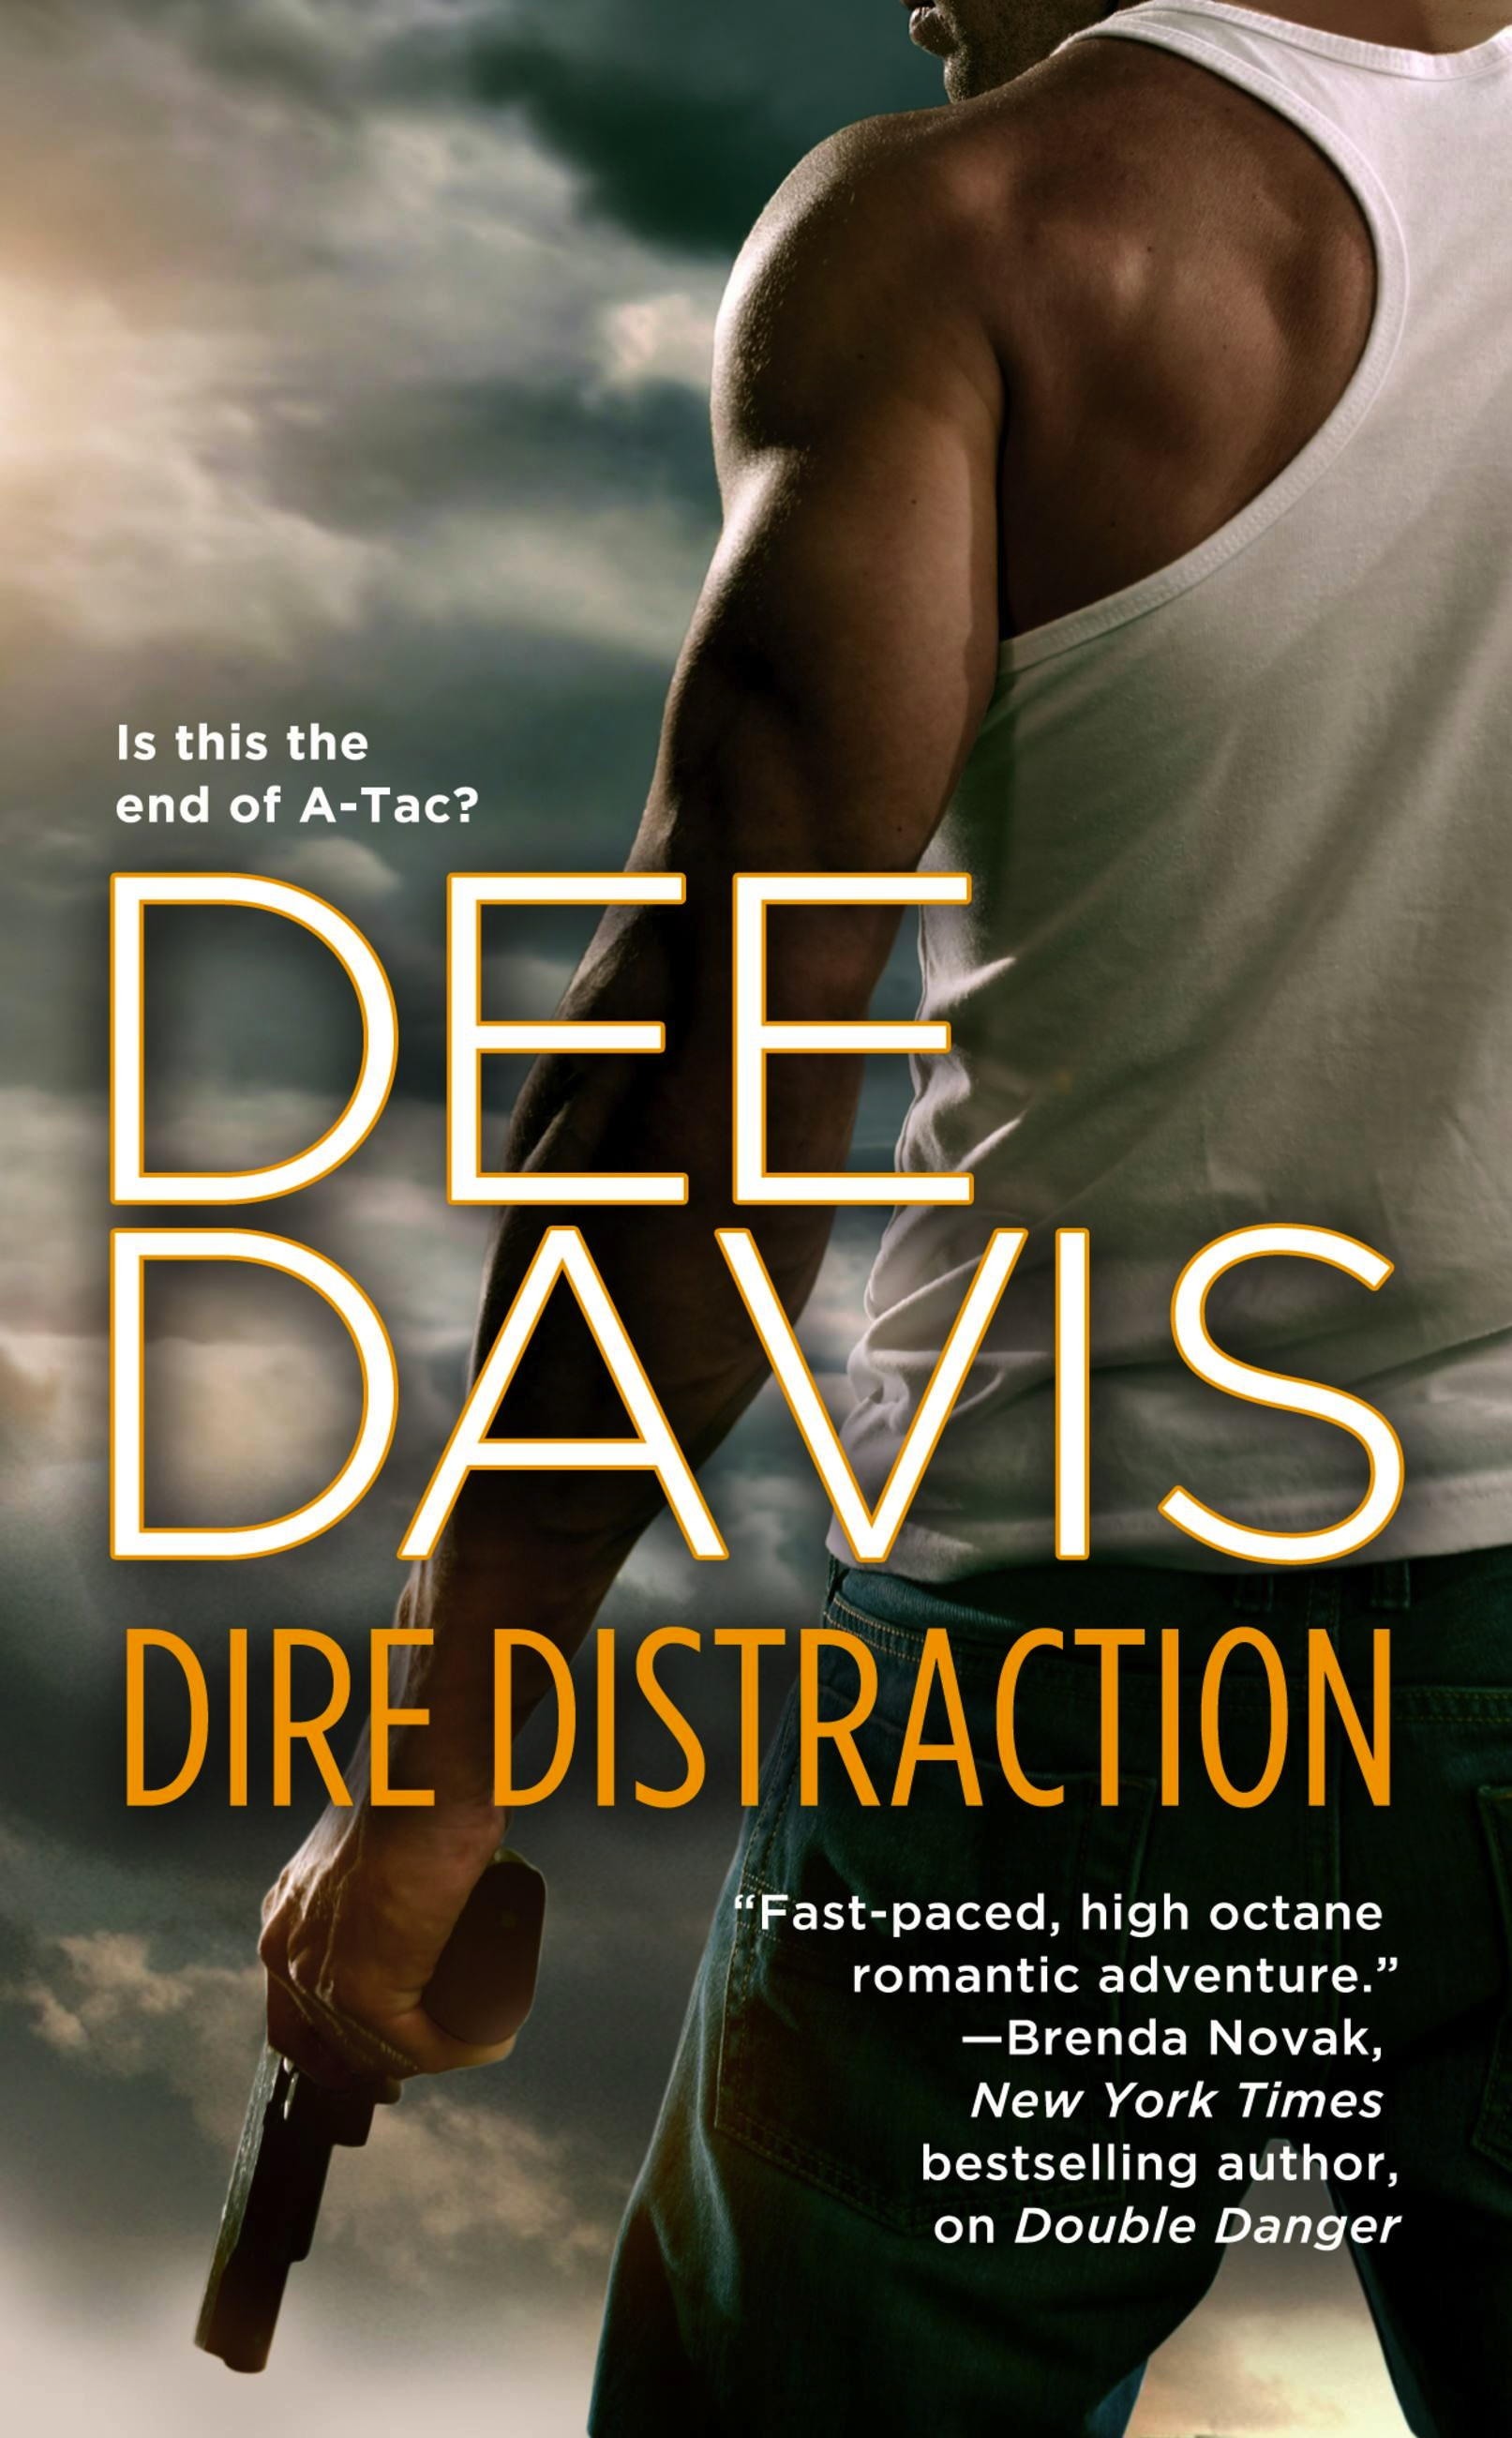 Dire Distraction